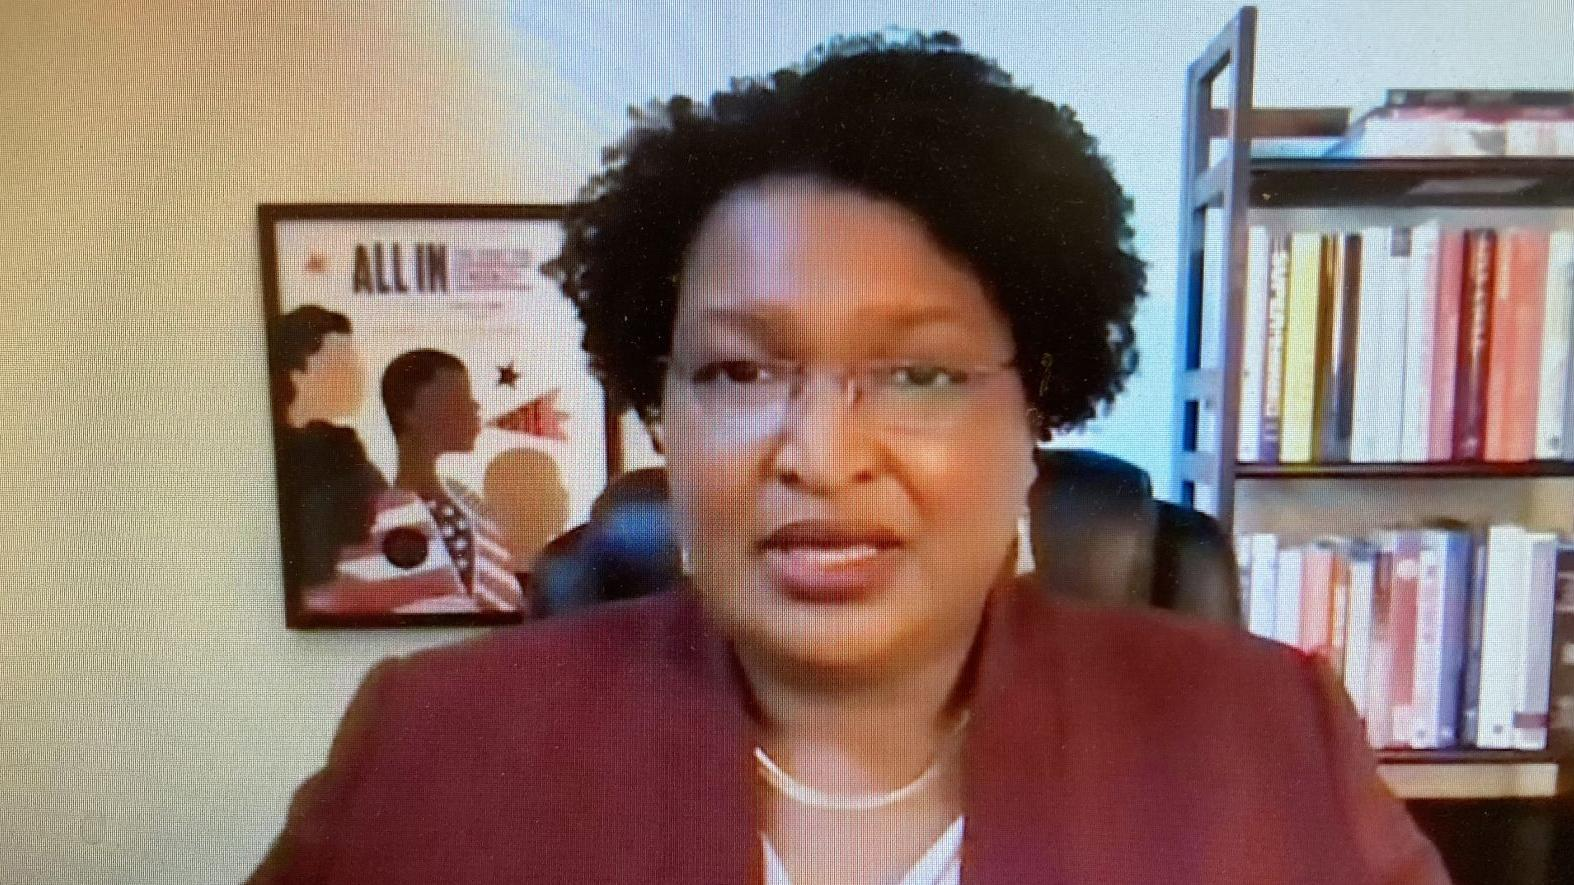 WATCH NOW: In passionate Averett speech, Stacey Abrams says building community requires trust, imagination, action